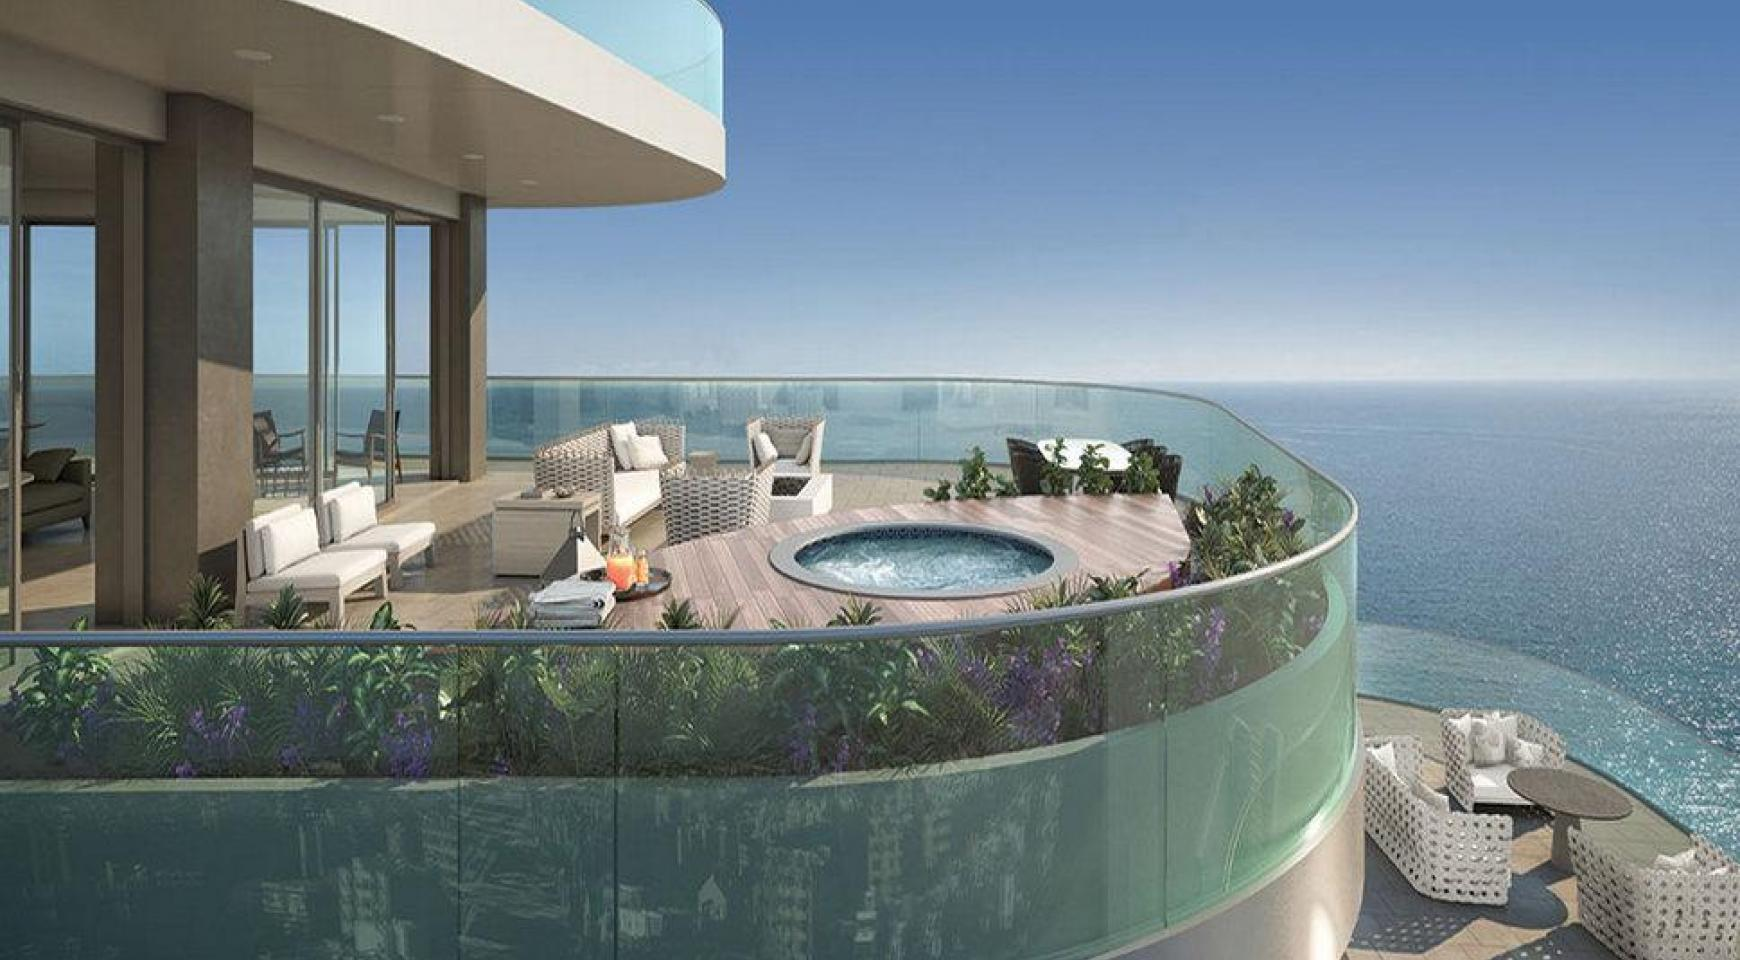 5 Bedroom Apartment in an Exclusive Seafront Project   - 3